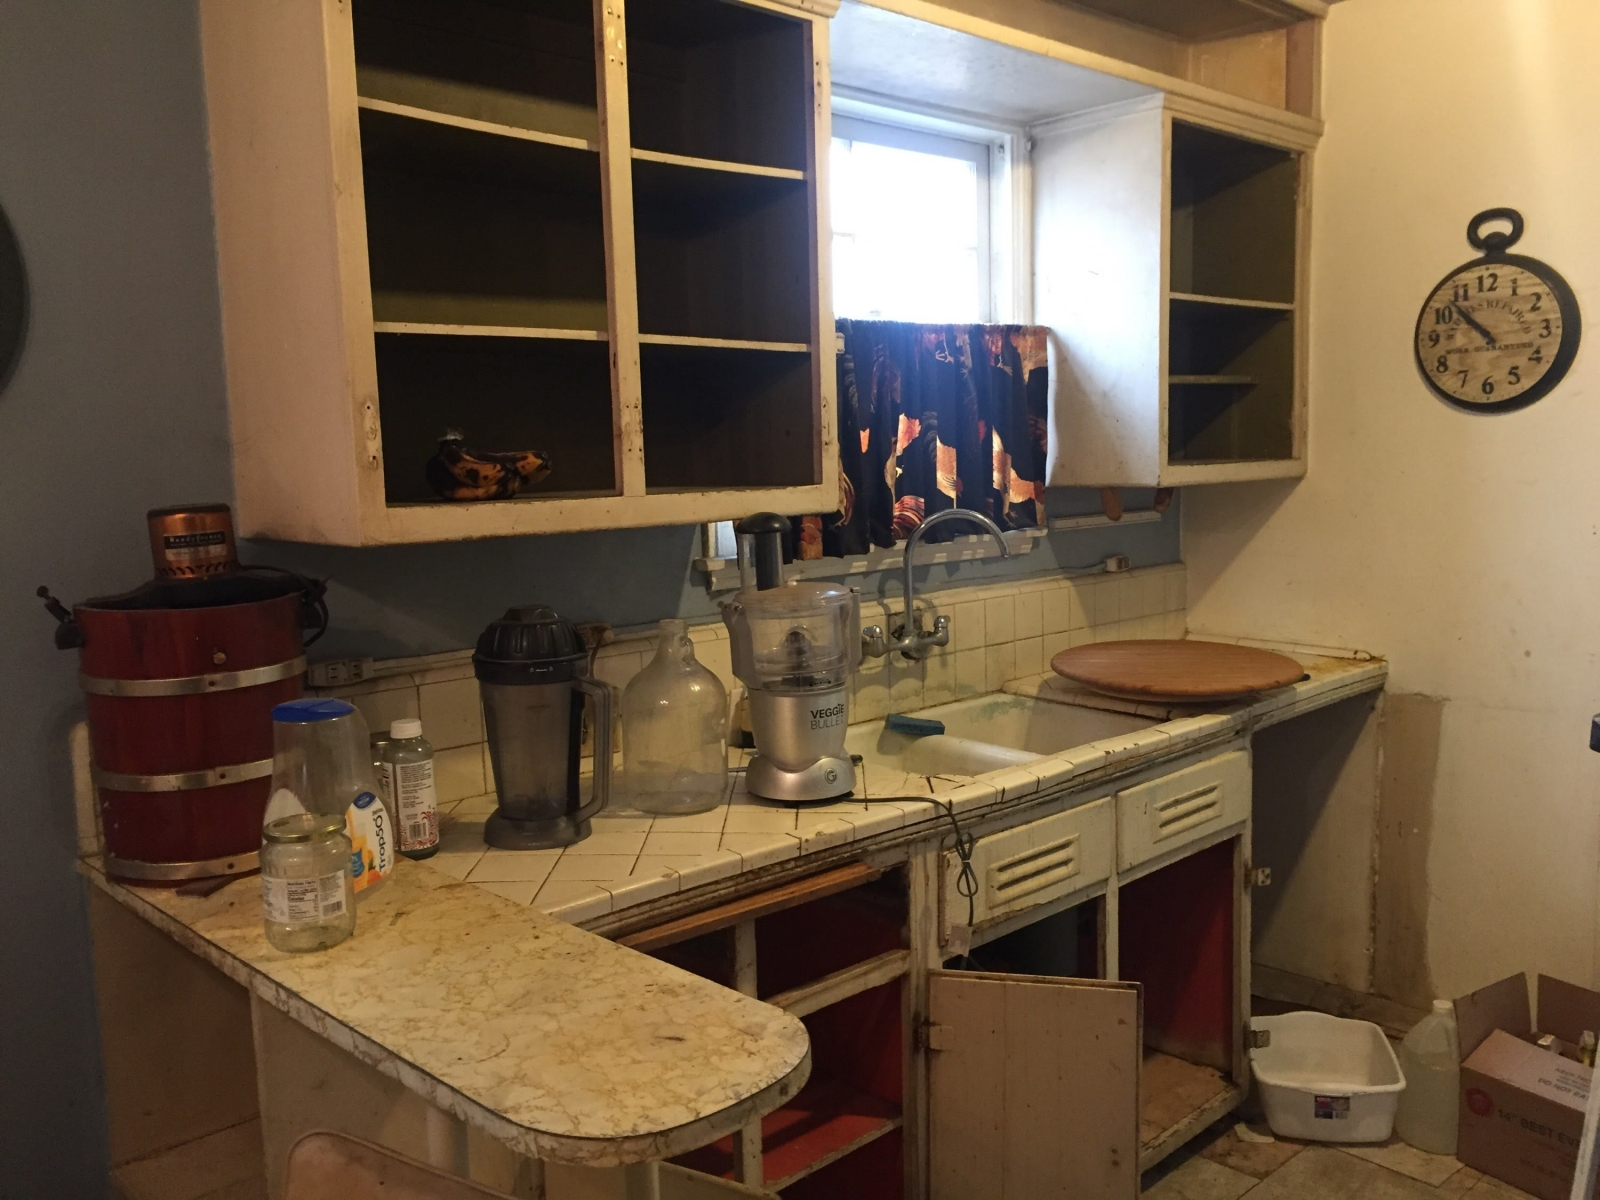 Kitchen Remodeling Burbank - Payless Kitchen Cabinets